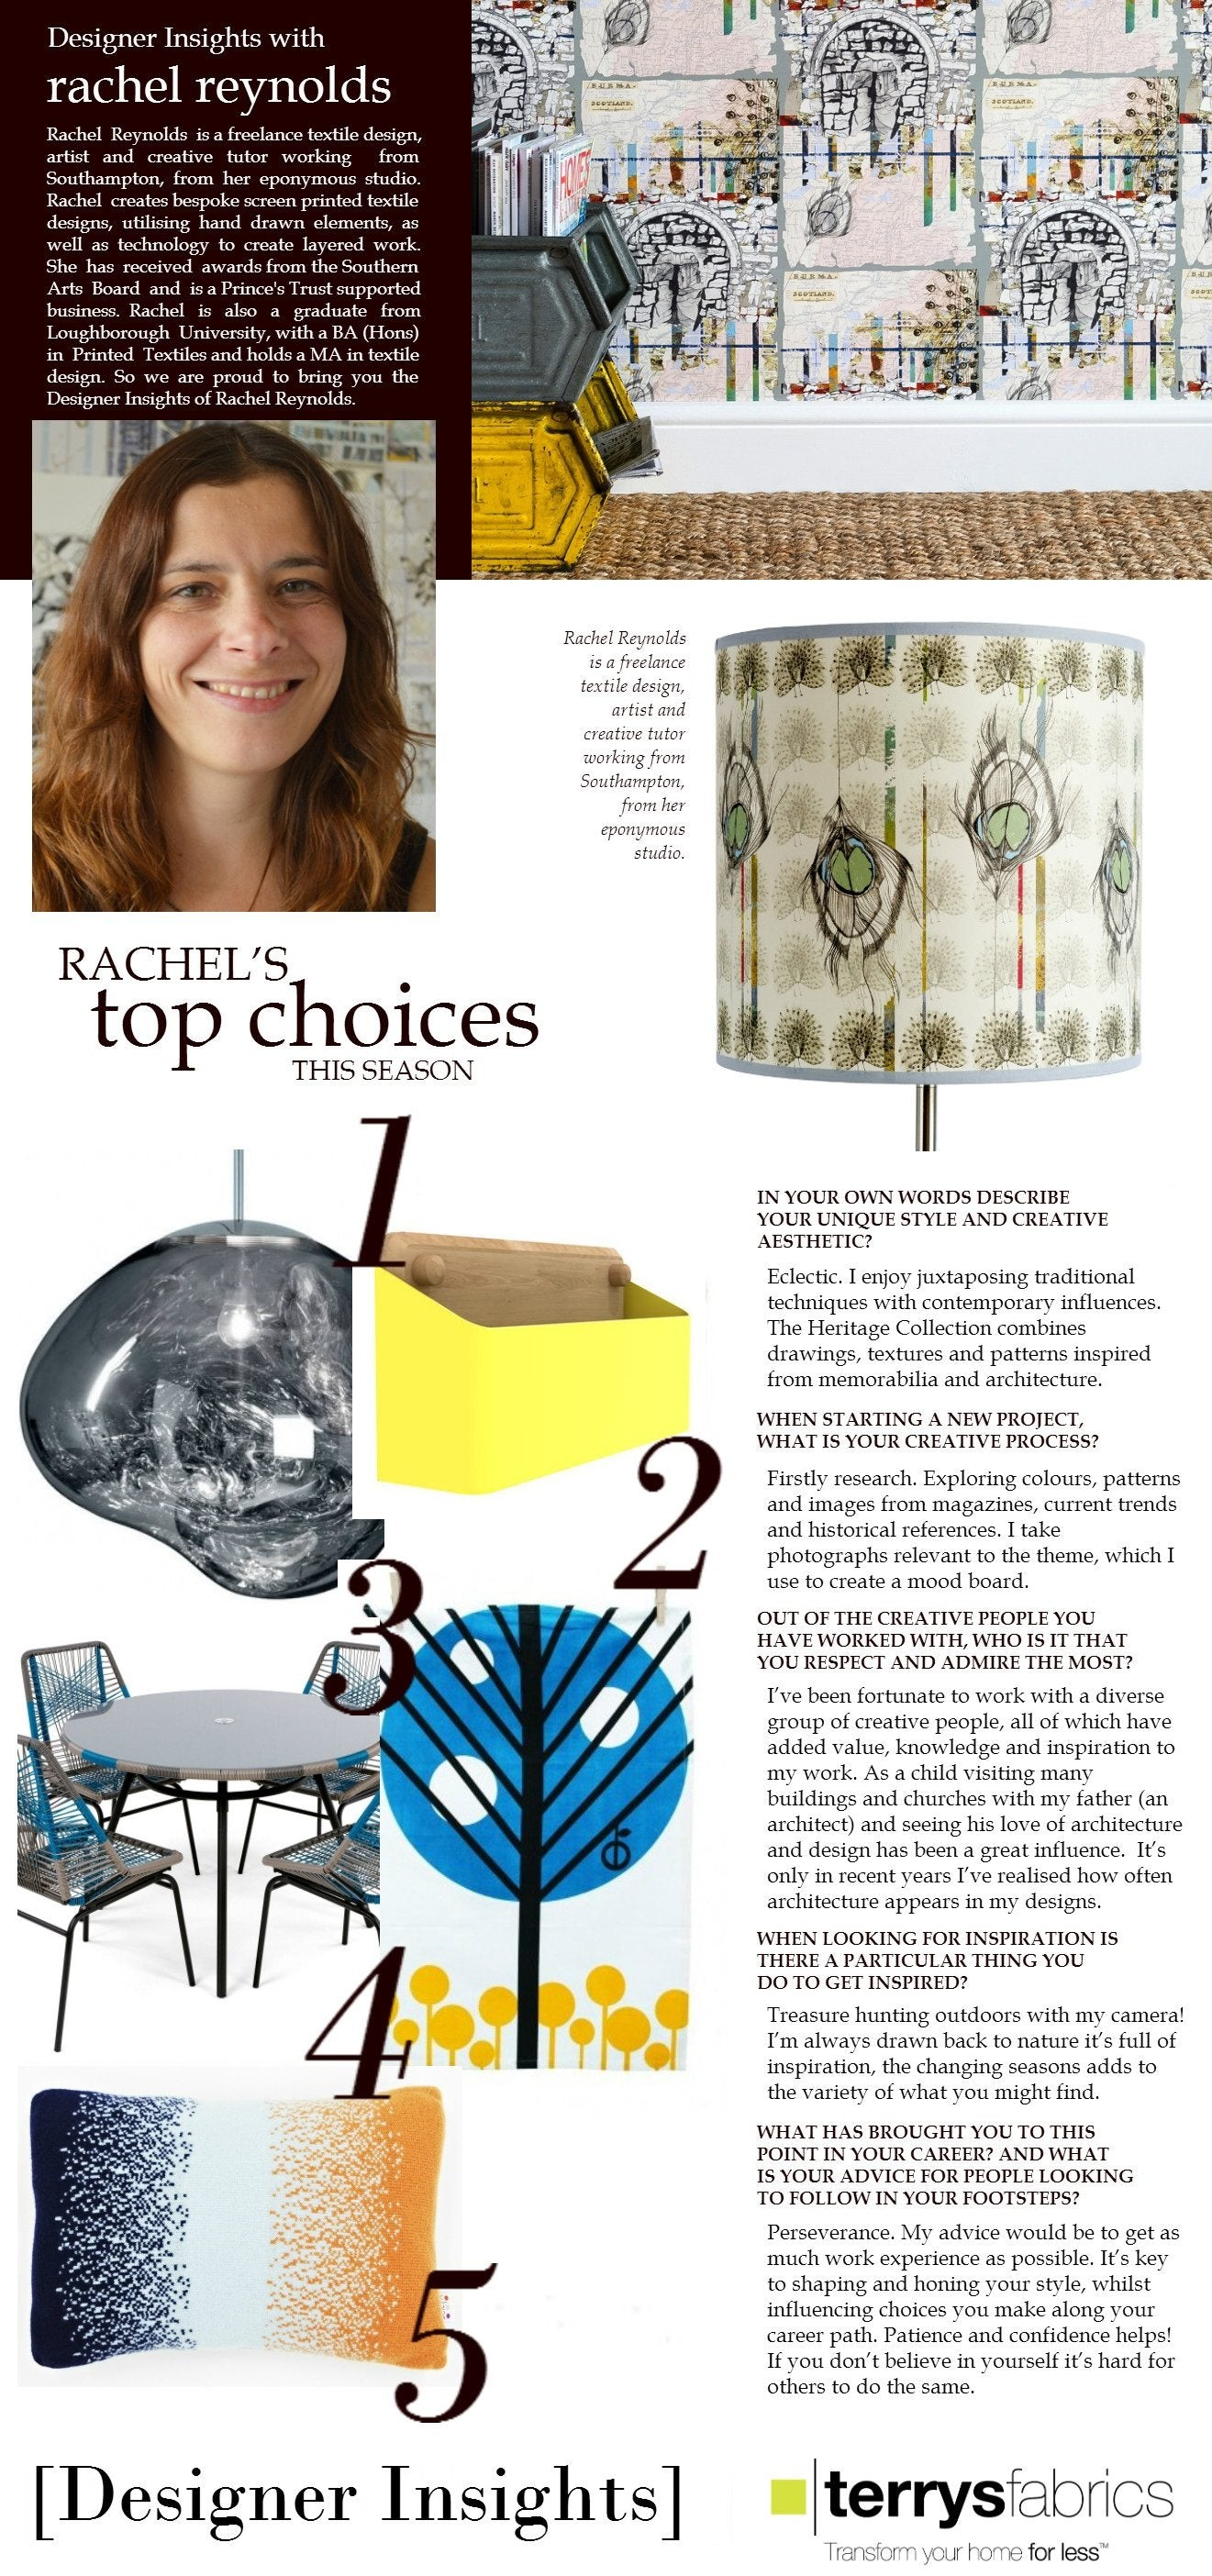 Designer Insights - Rachel Reynolds